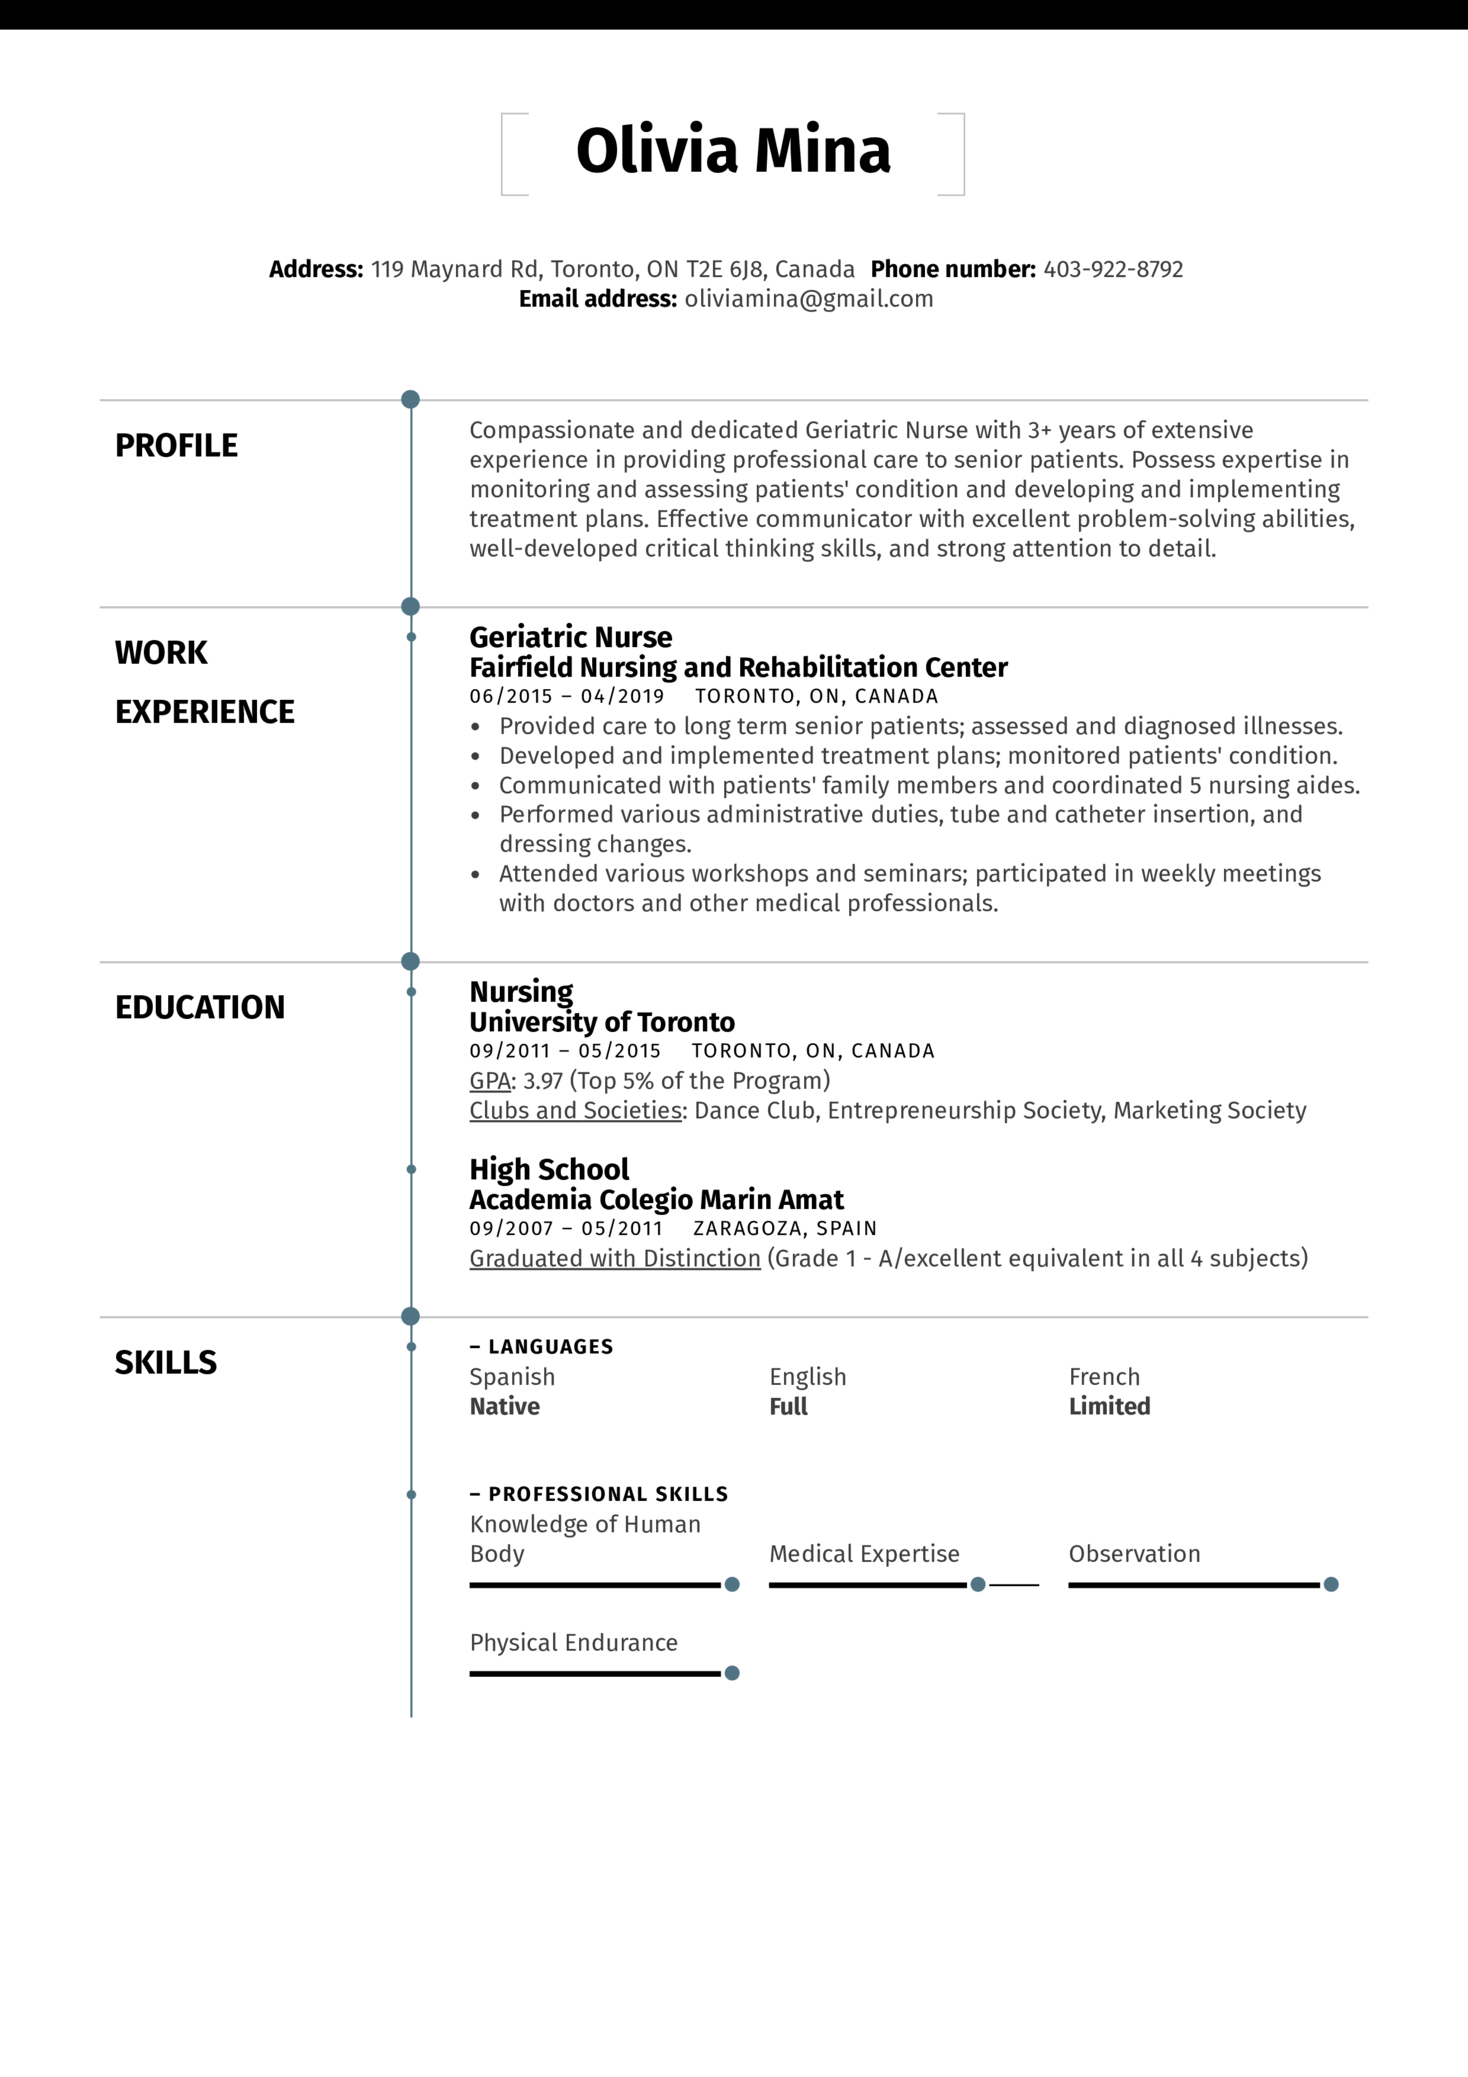 Resume Examples by Real People: Geriatric Nurse Resume ...